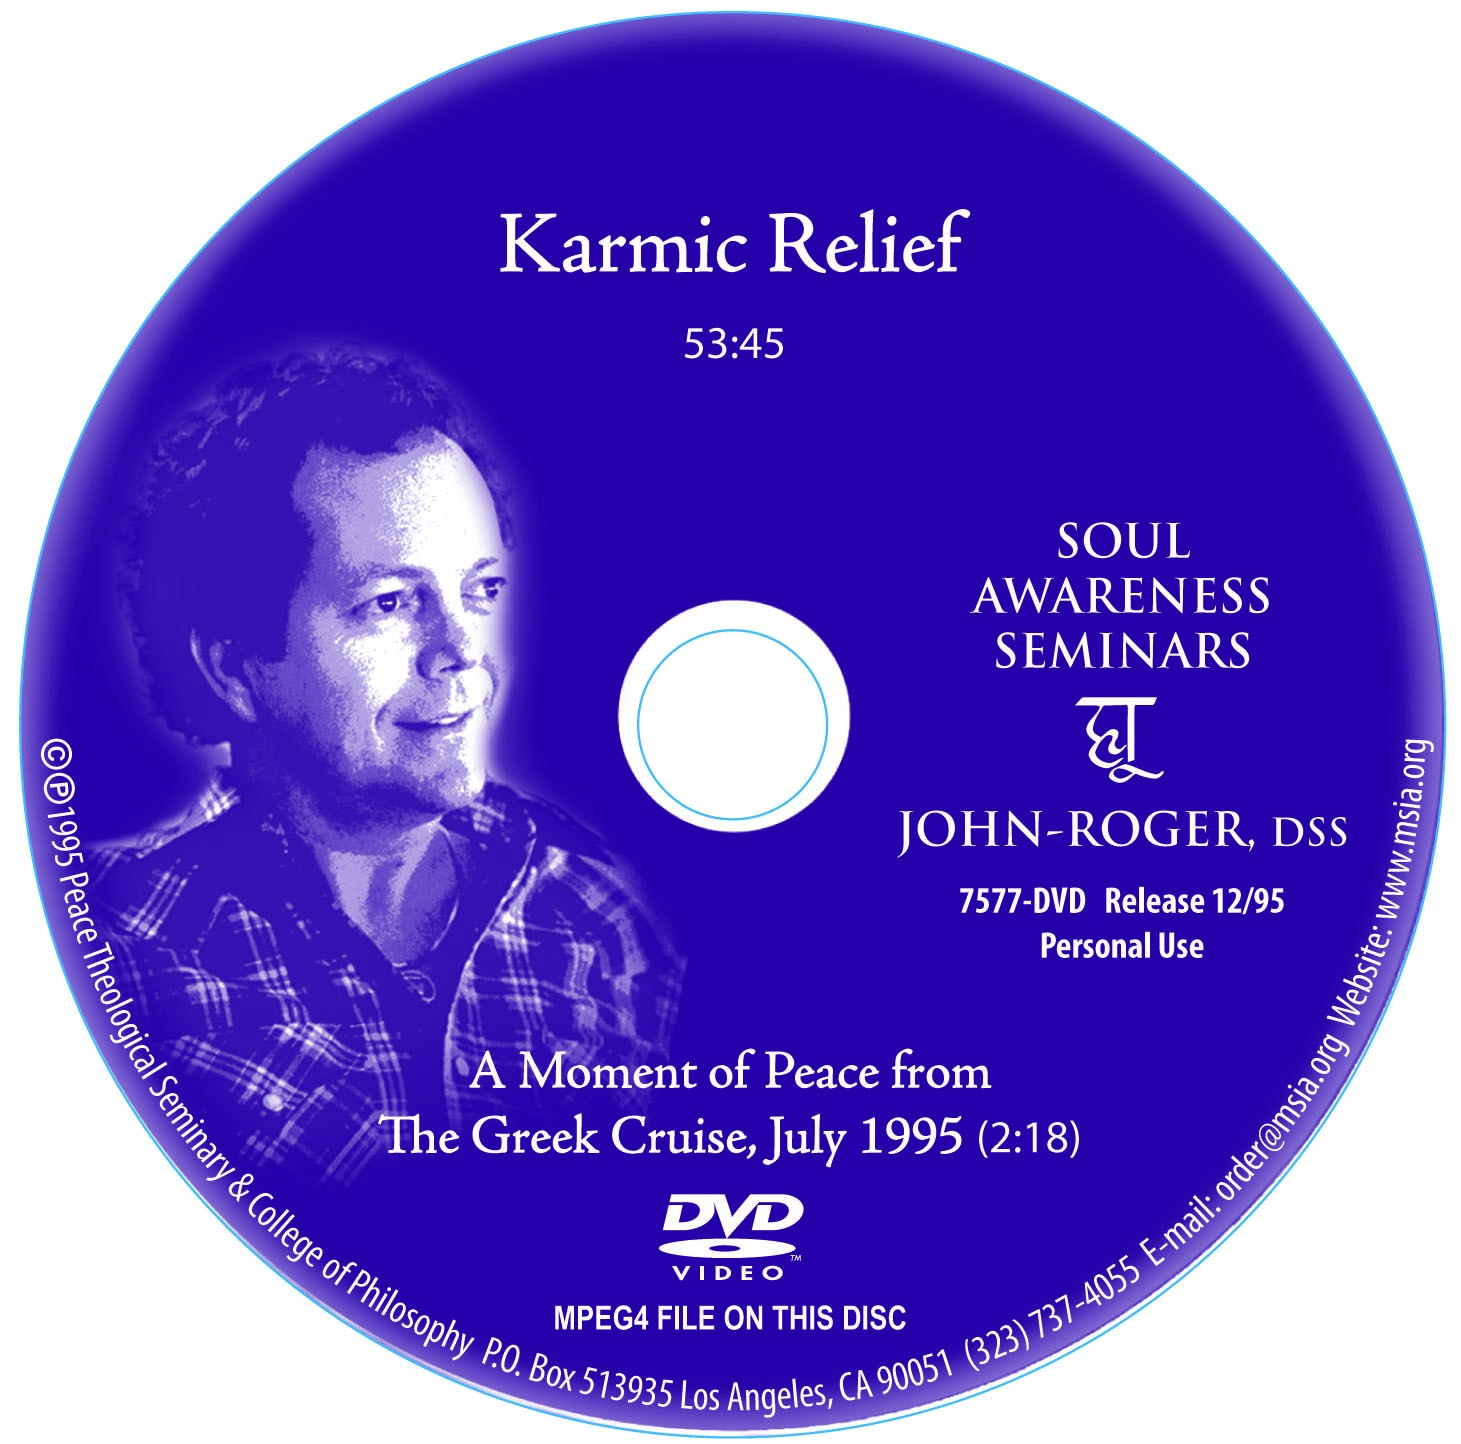 Karmic Relief DVD